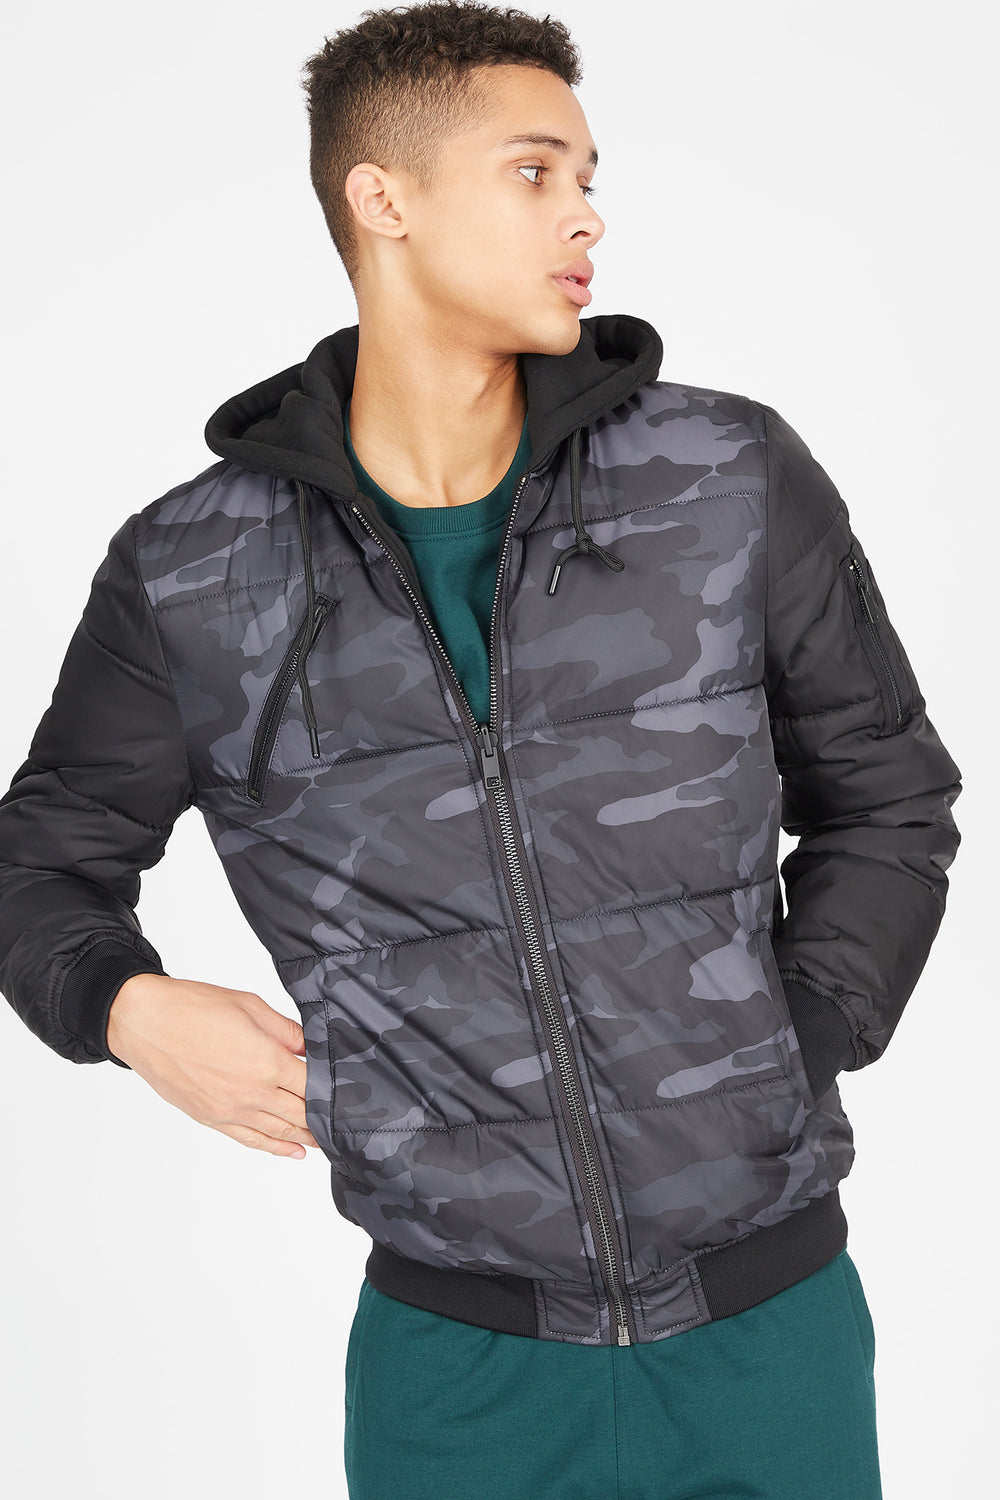 Reversible Camo Puffer Bomber Jacket Black with White